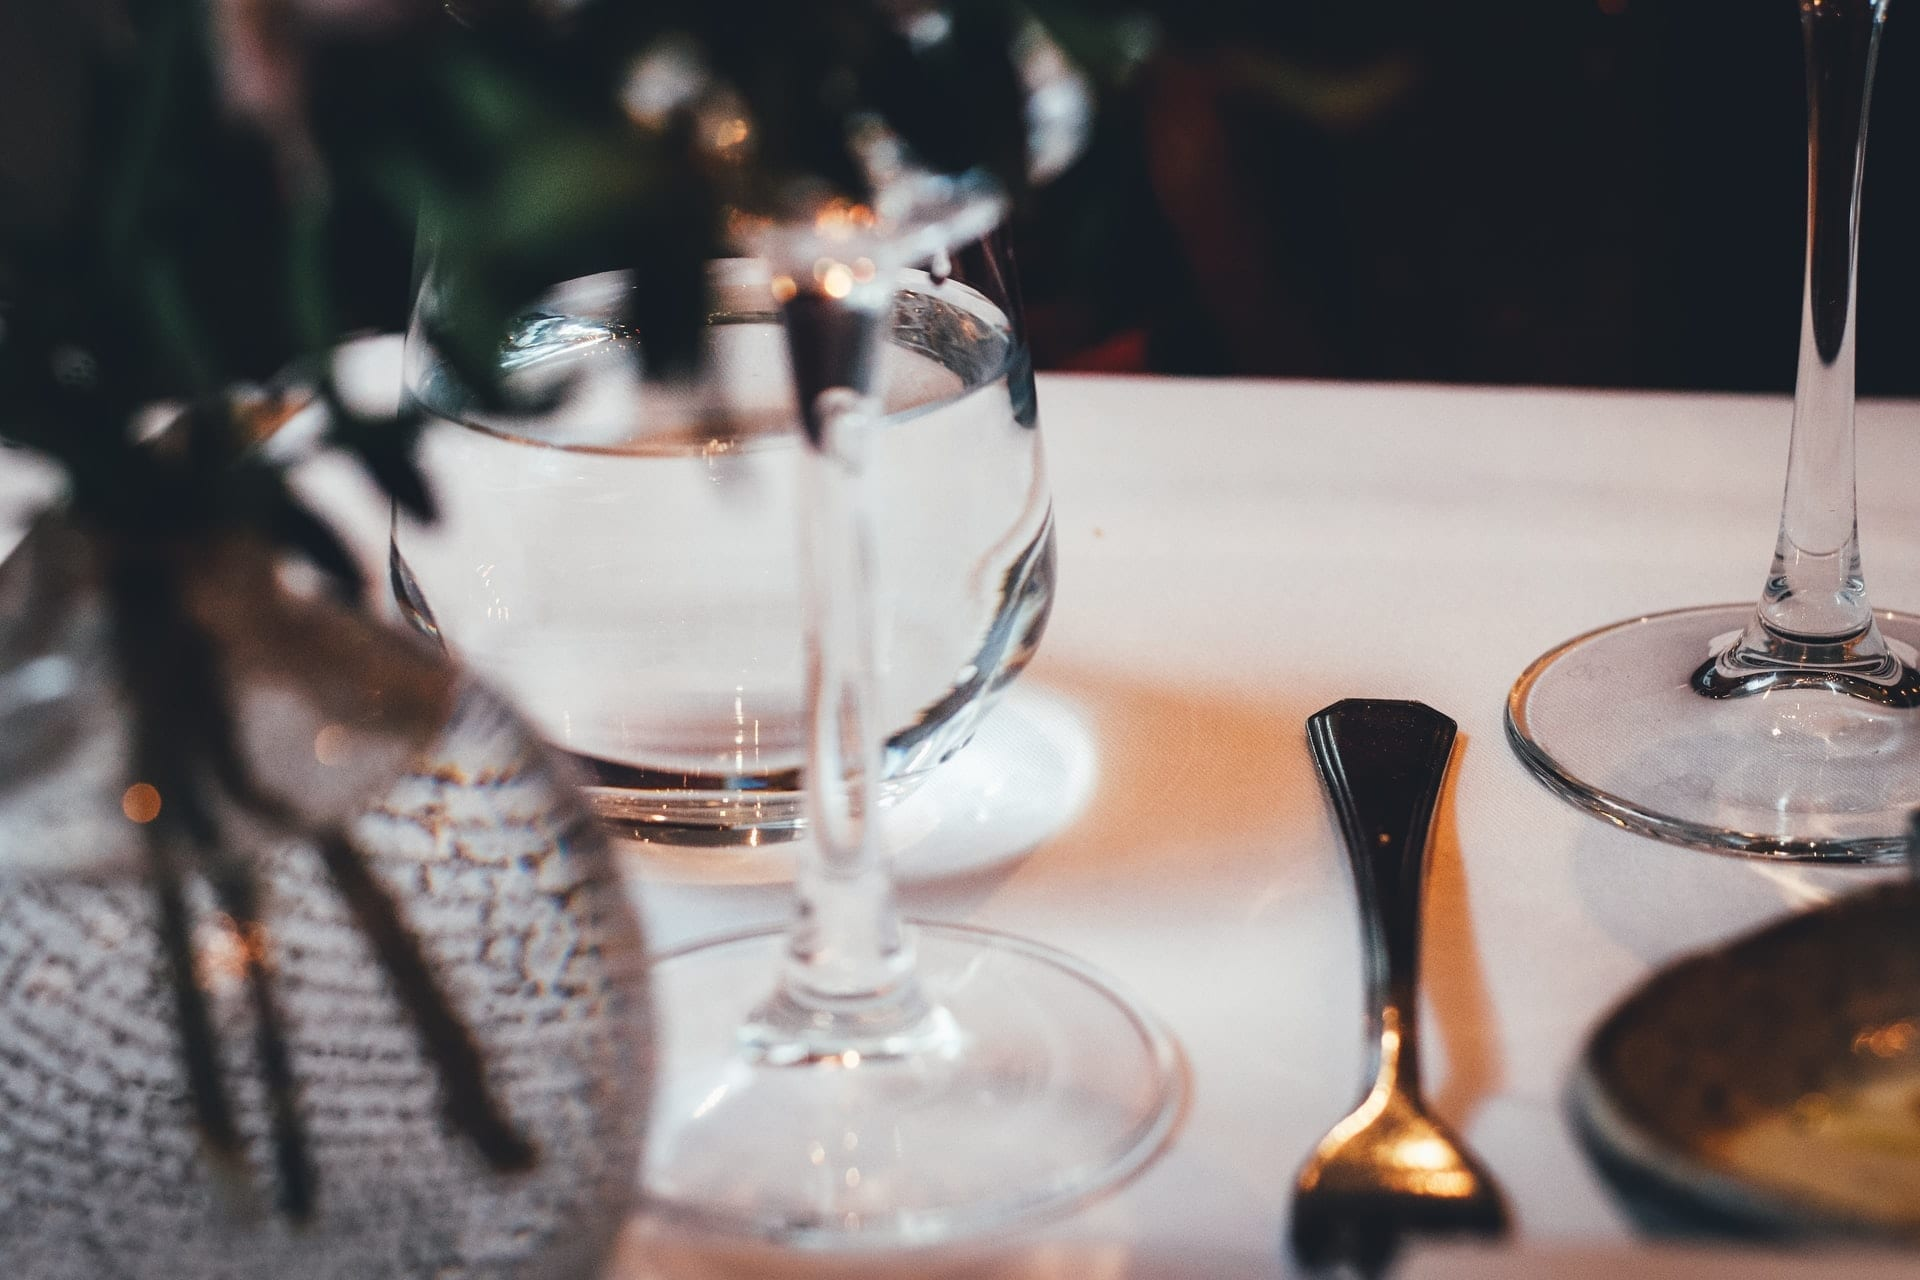 picture of a dining table with cutlery and a glass